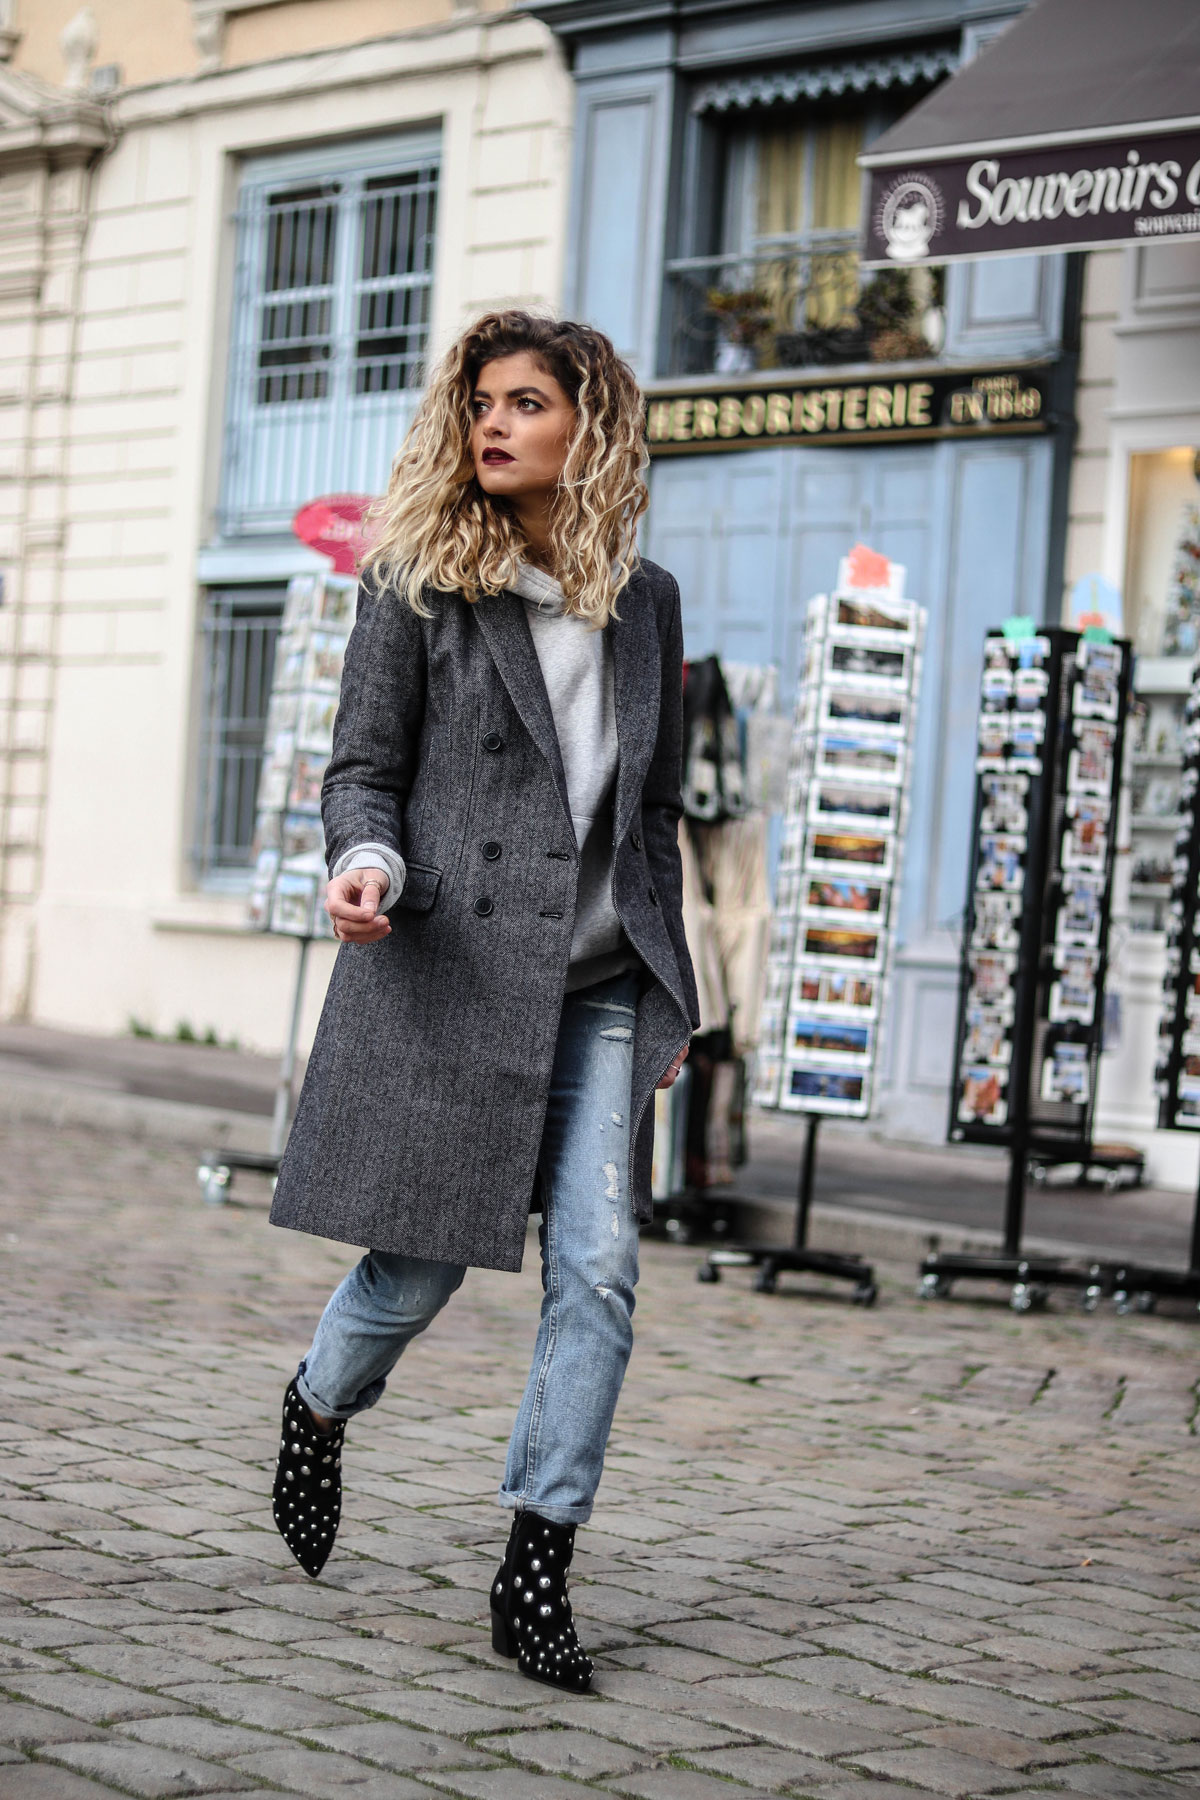 streetstyle marie and mood